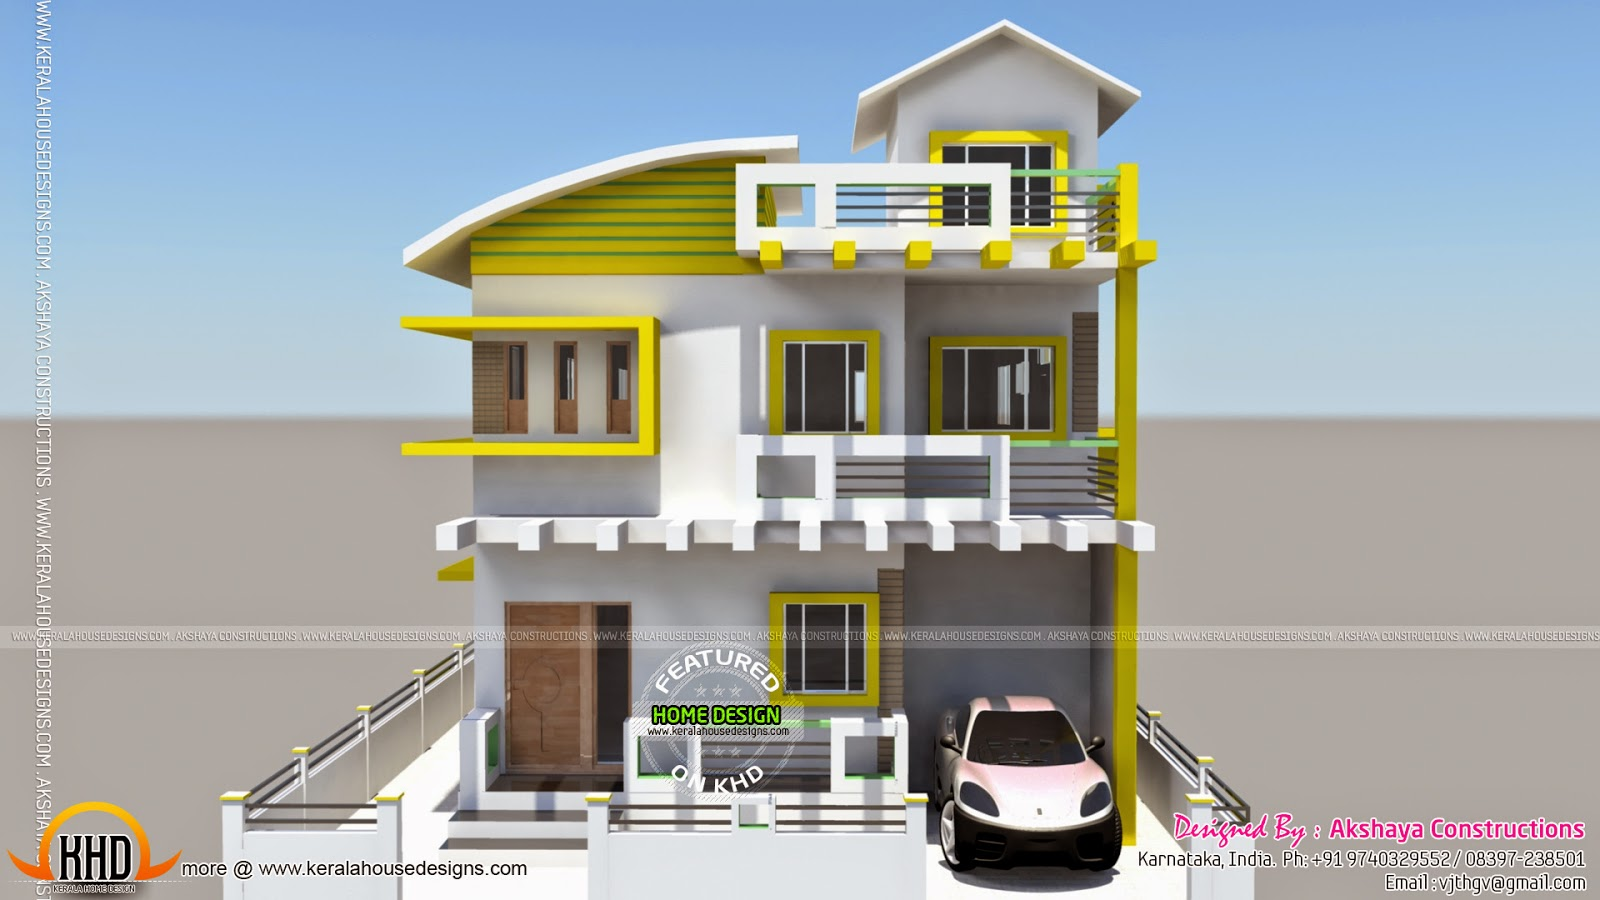 Karnataka home design kerala home design and floor plans for In home designs